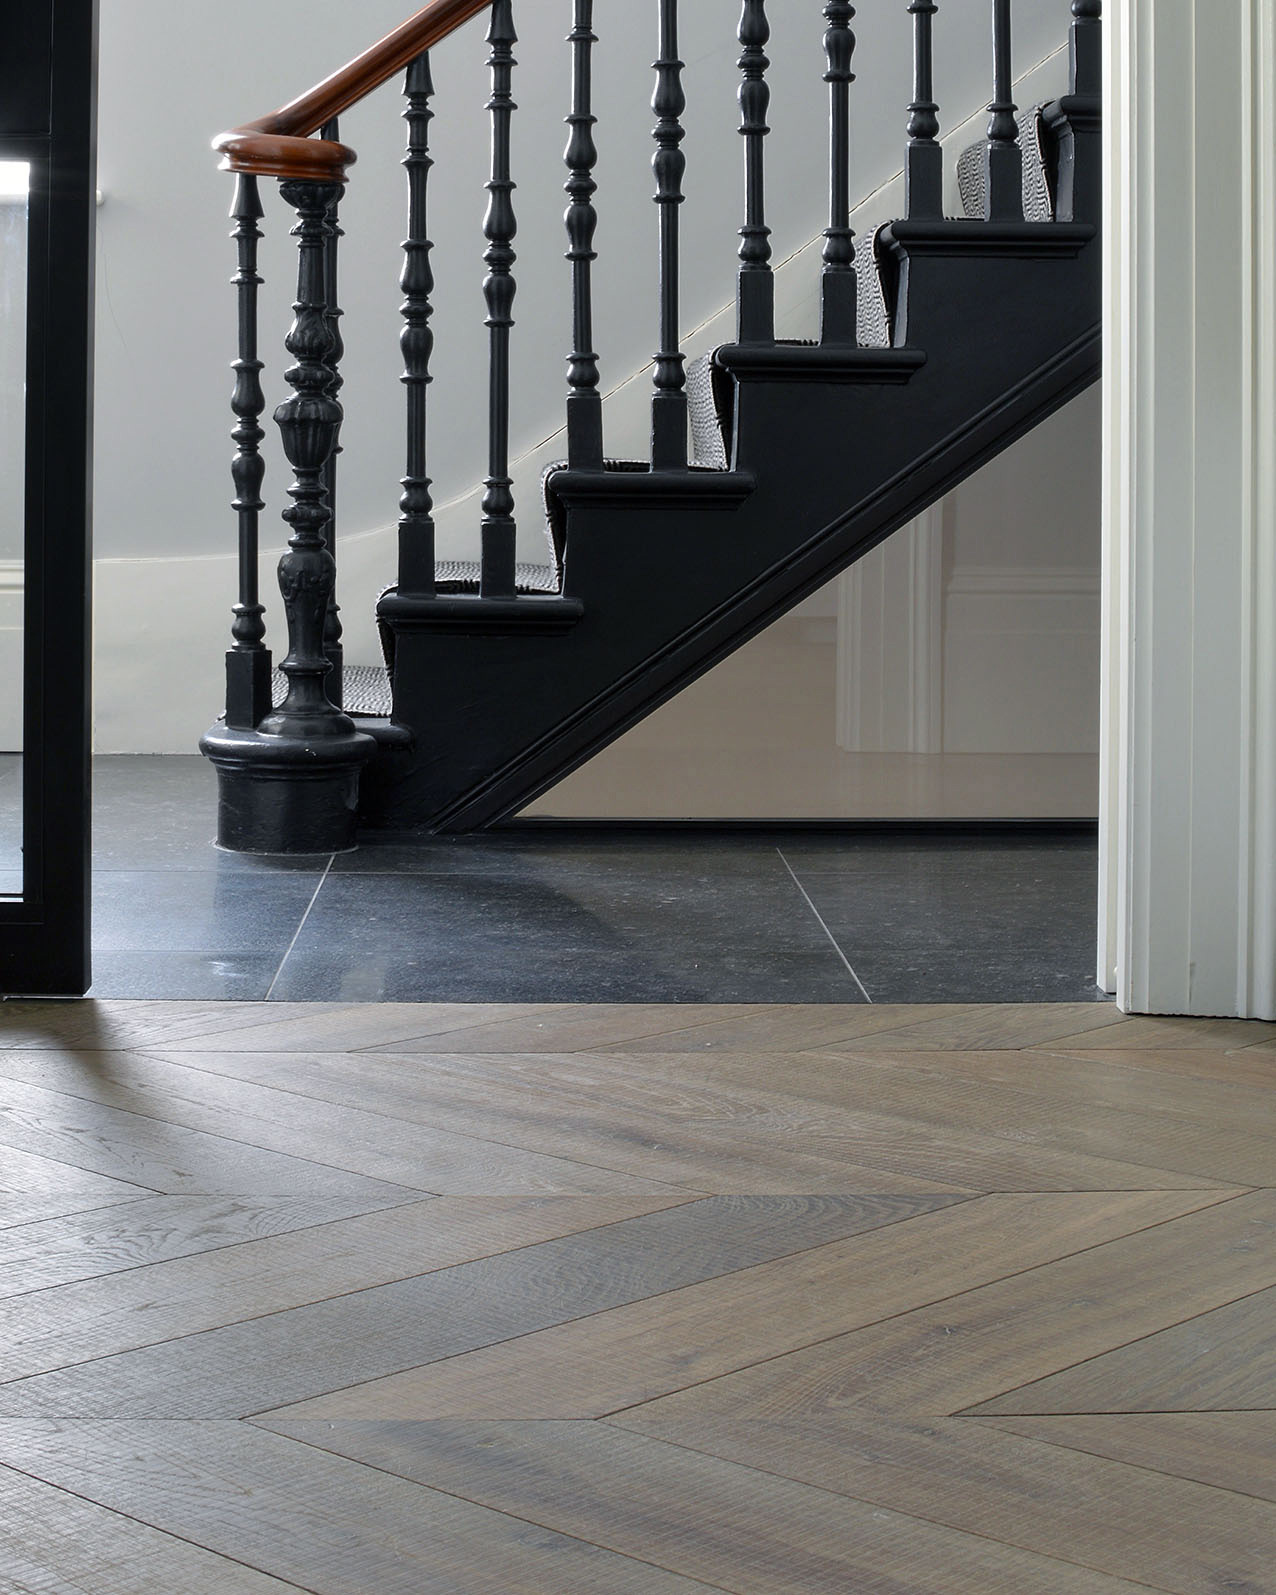 Oak tate tiree chevron against floor tiles and a staircase